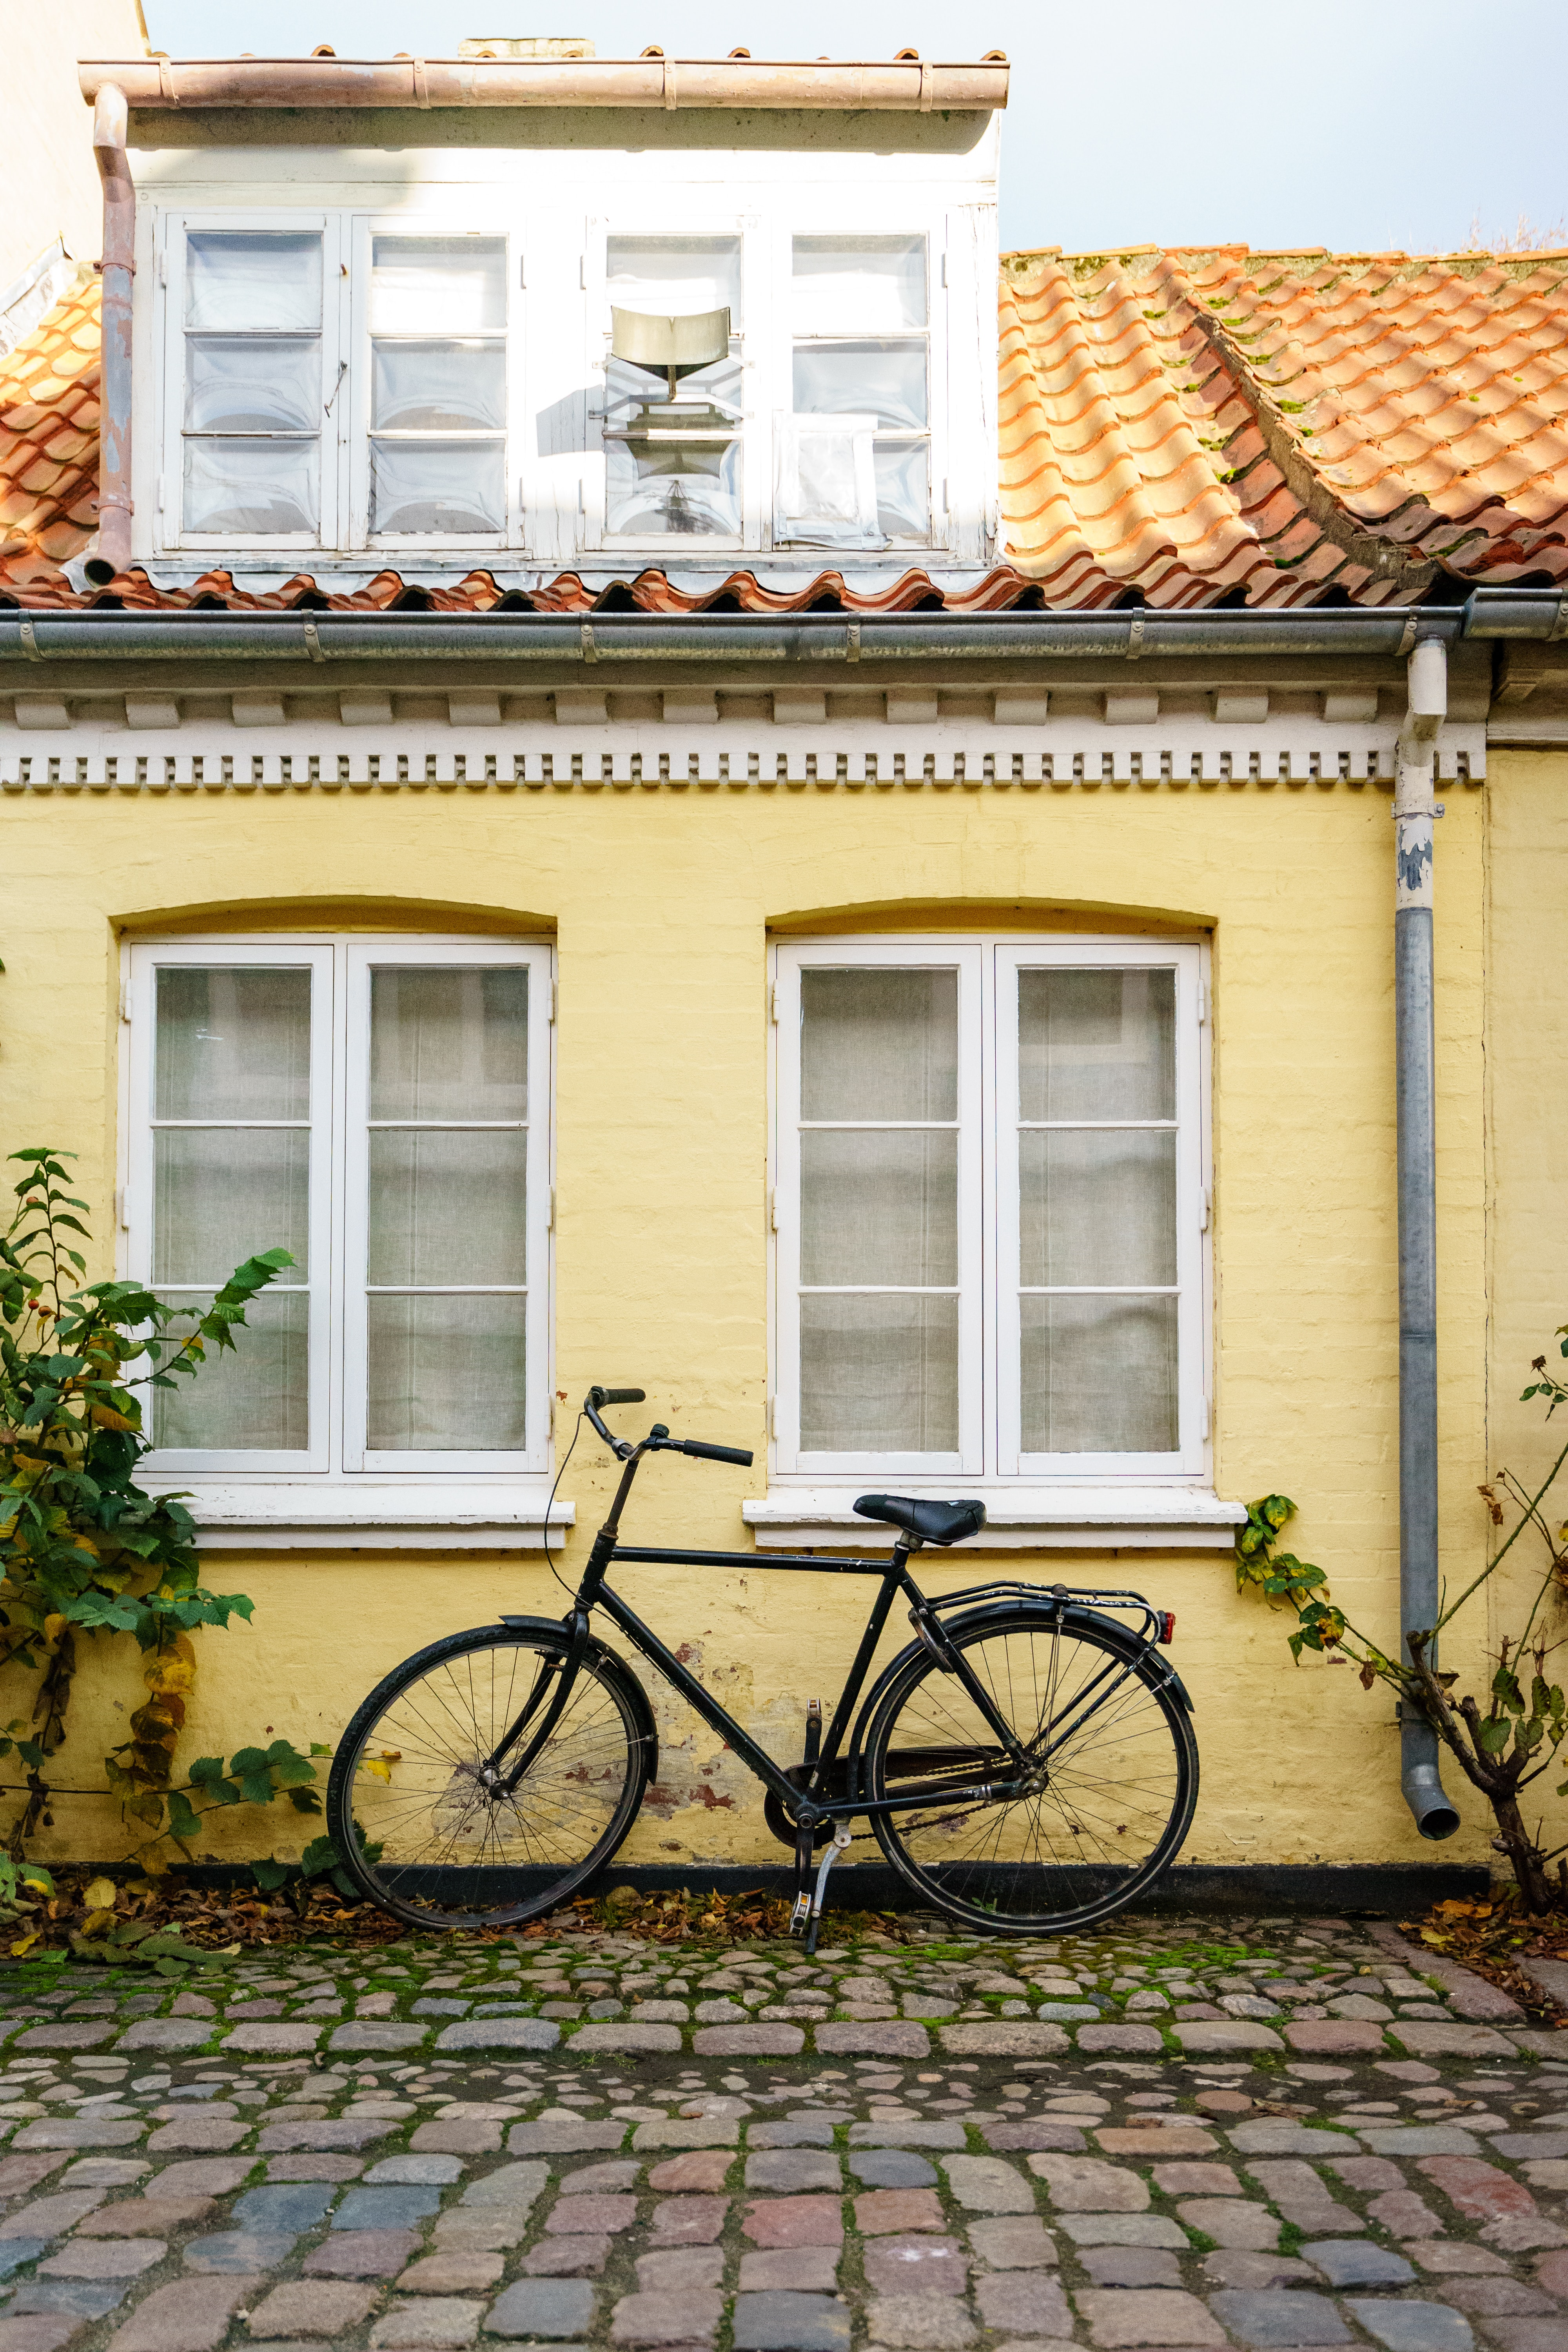 black bicycle parked beside yellow painted house